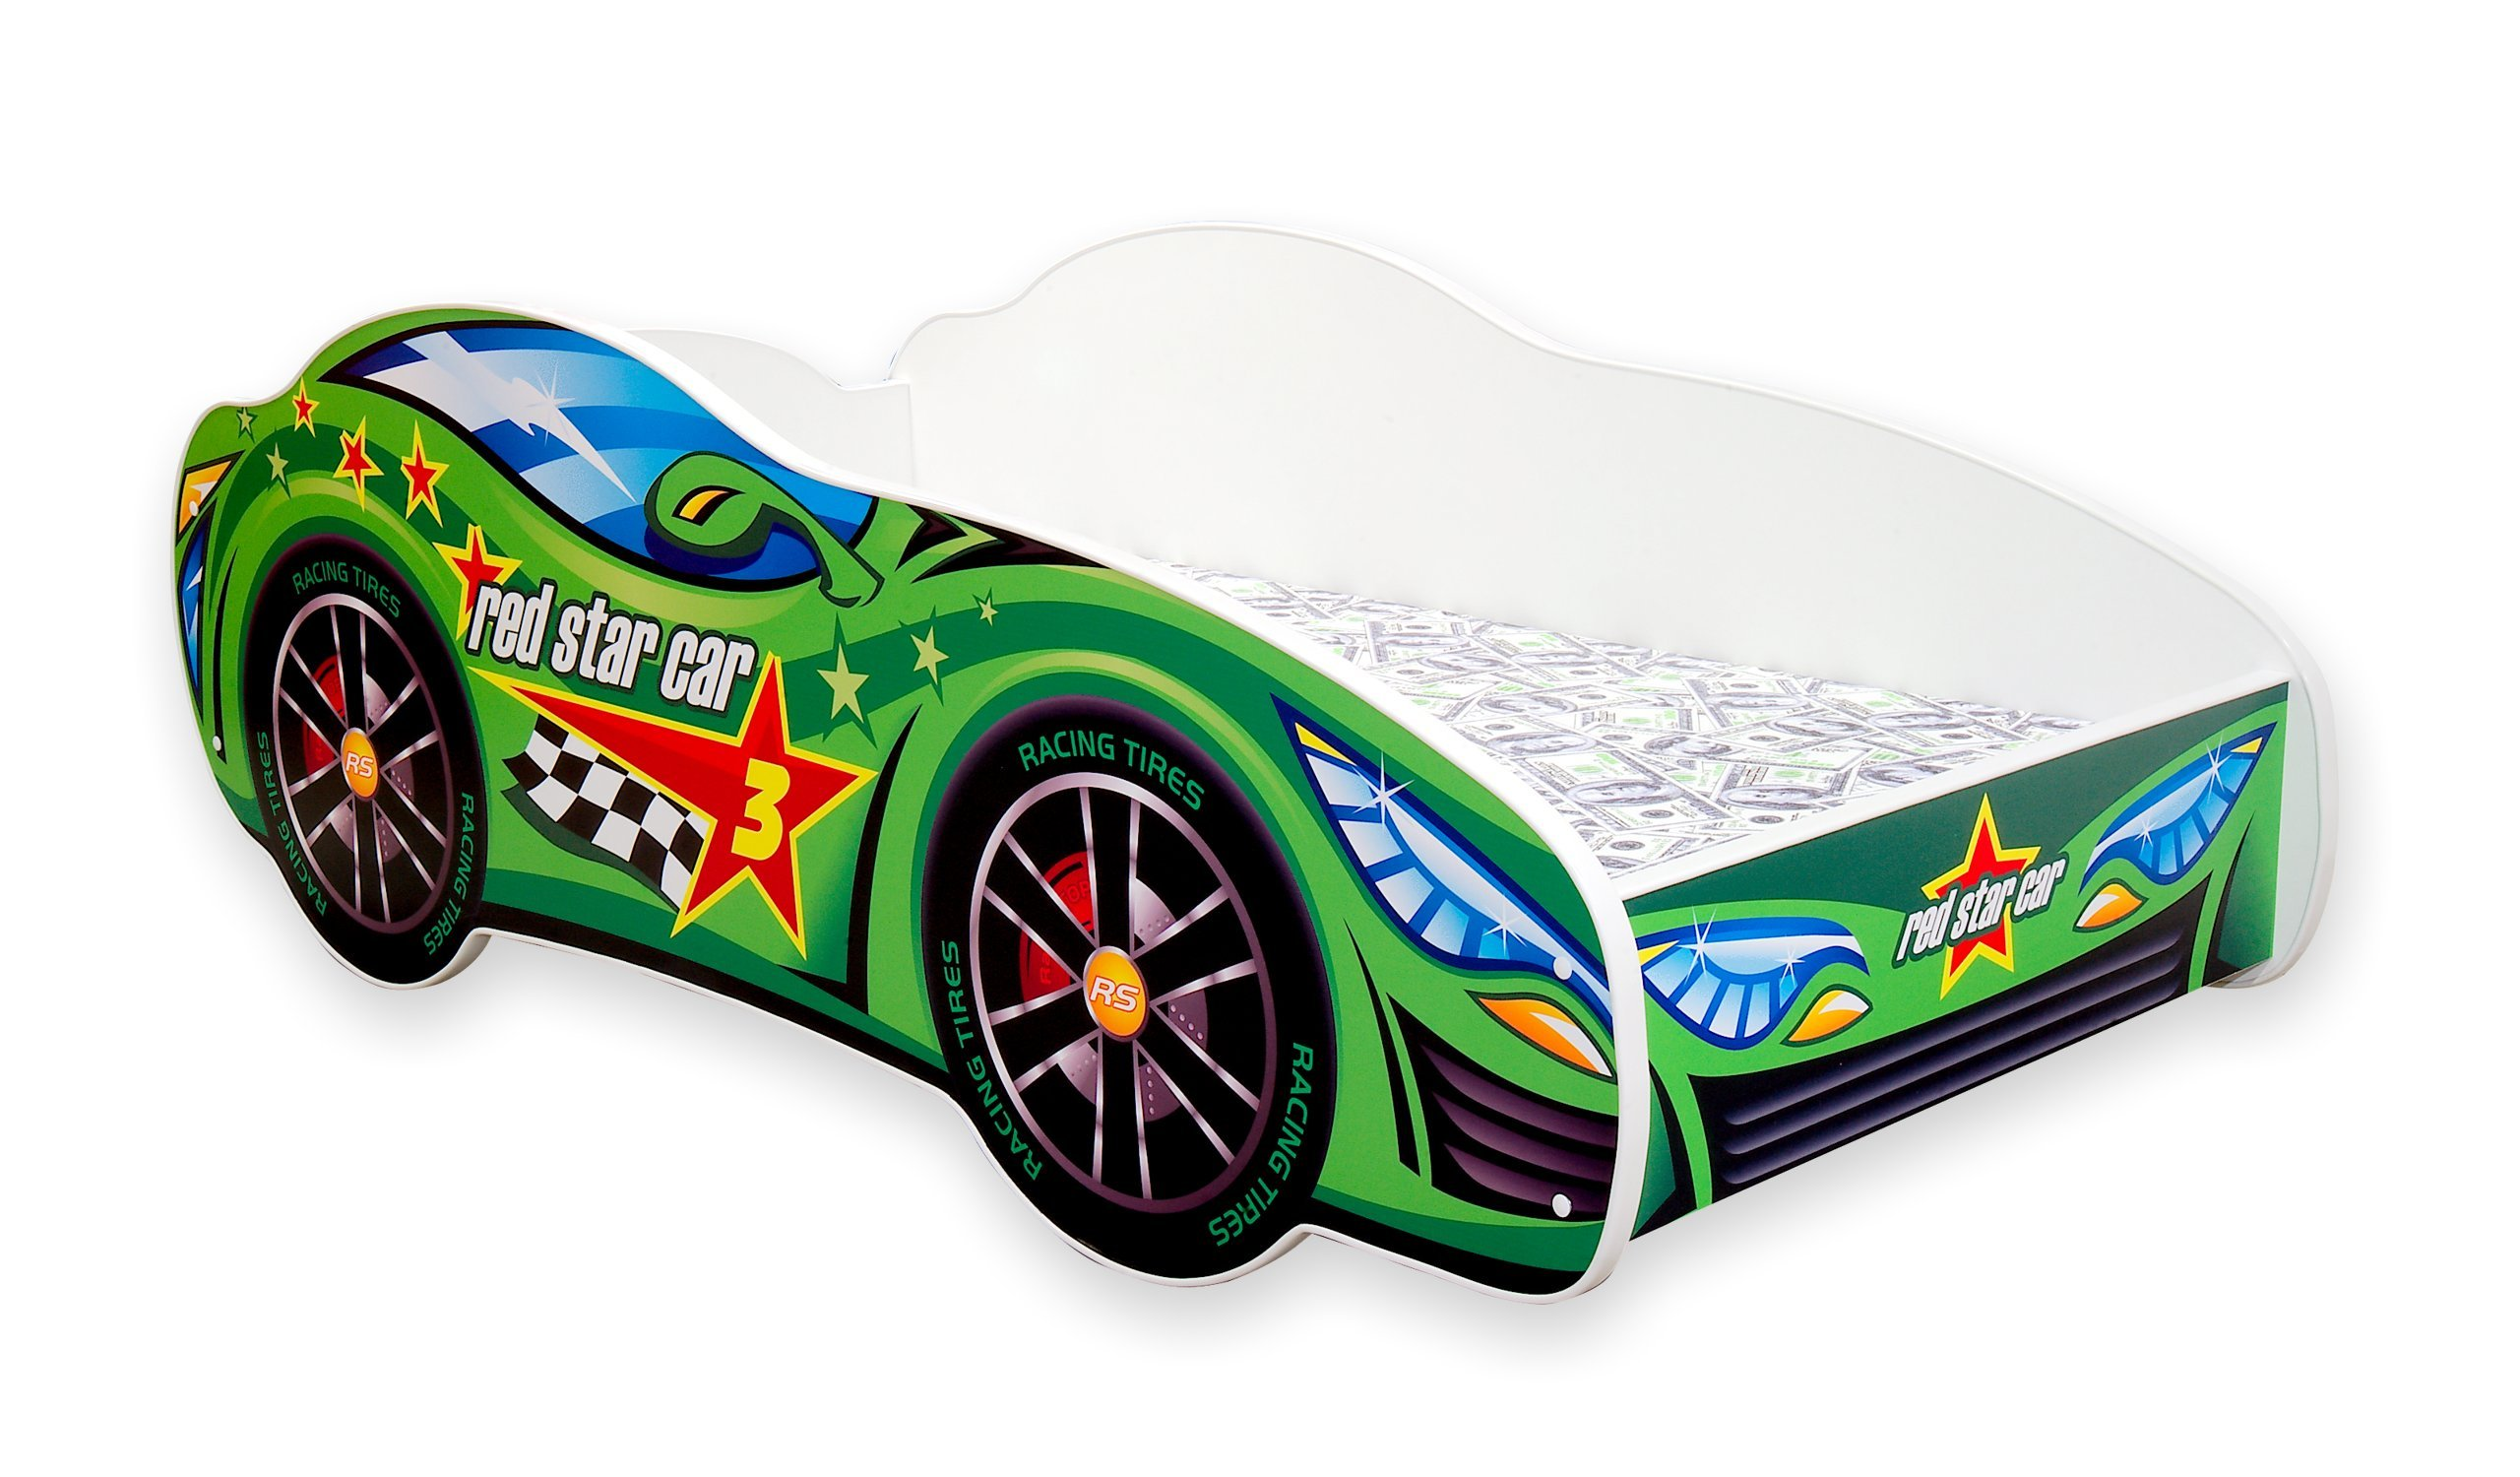 Toddler Boy Bed Kids Bed Junior Children's Single Car Bed with Mattress Included - Racing Car (Green, 160x80) Wonderhome24